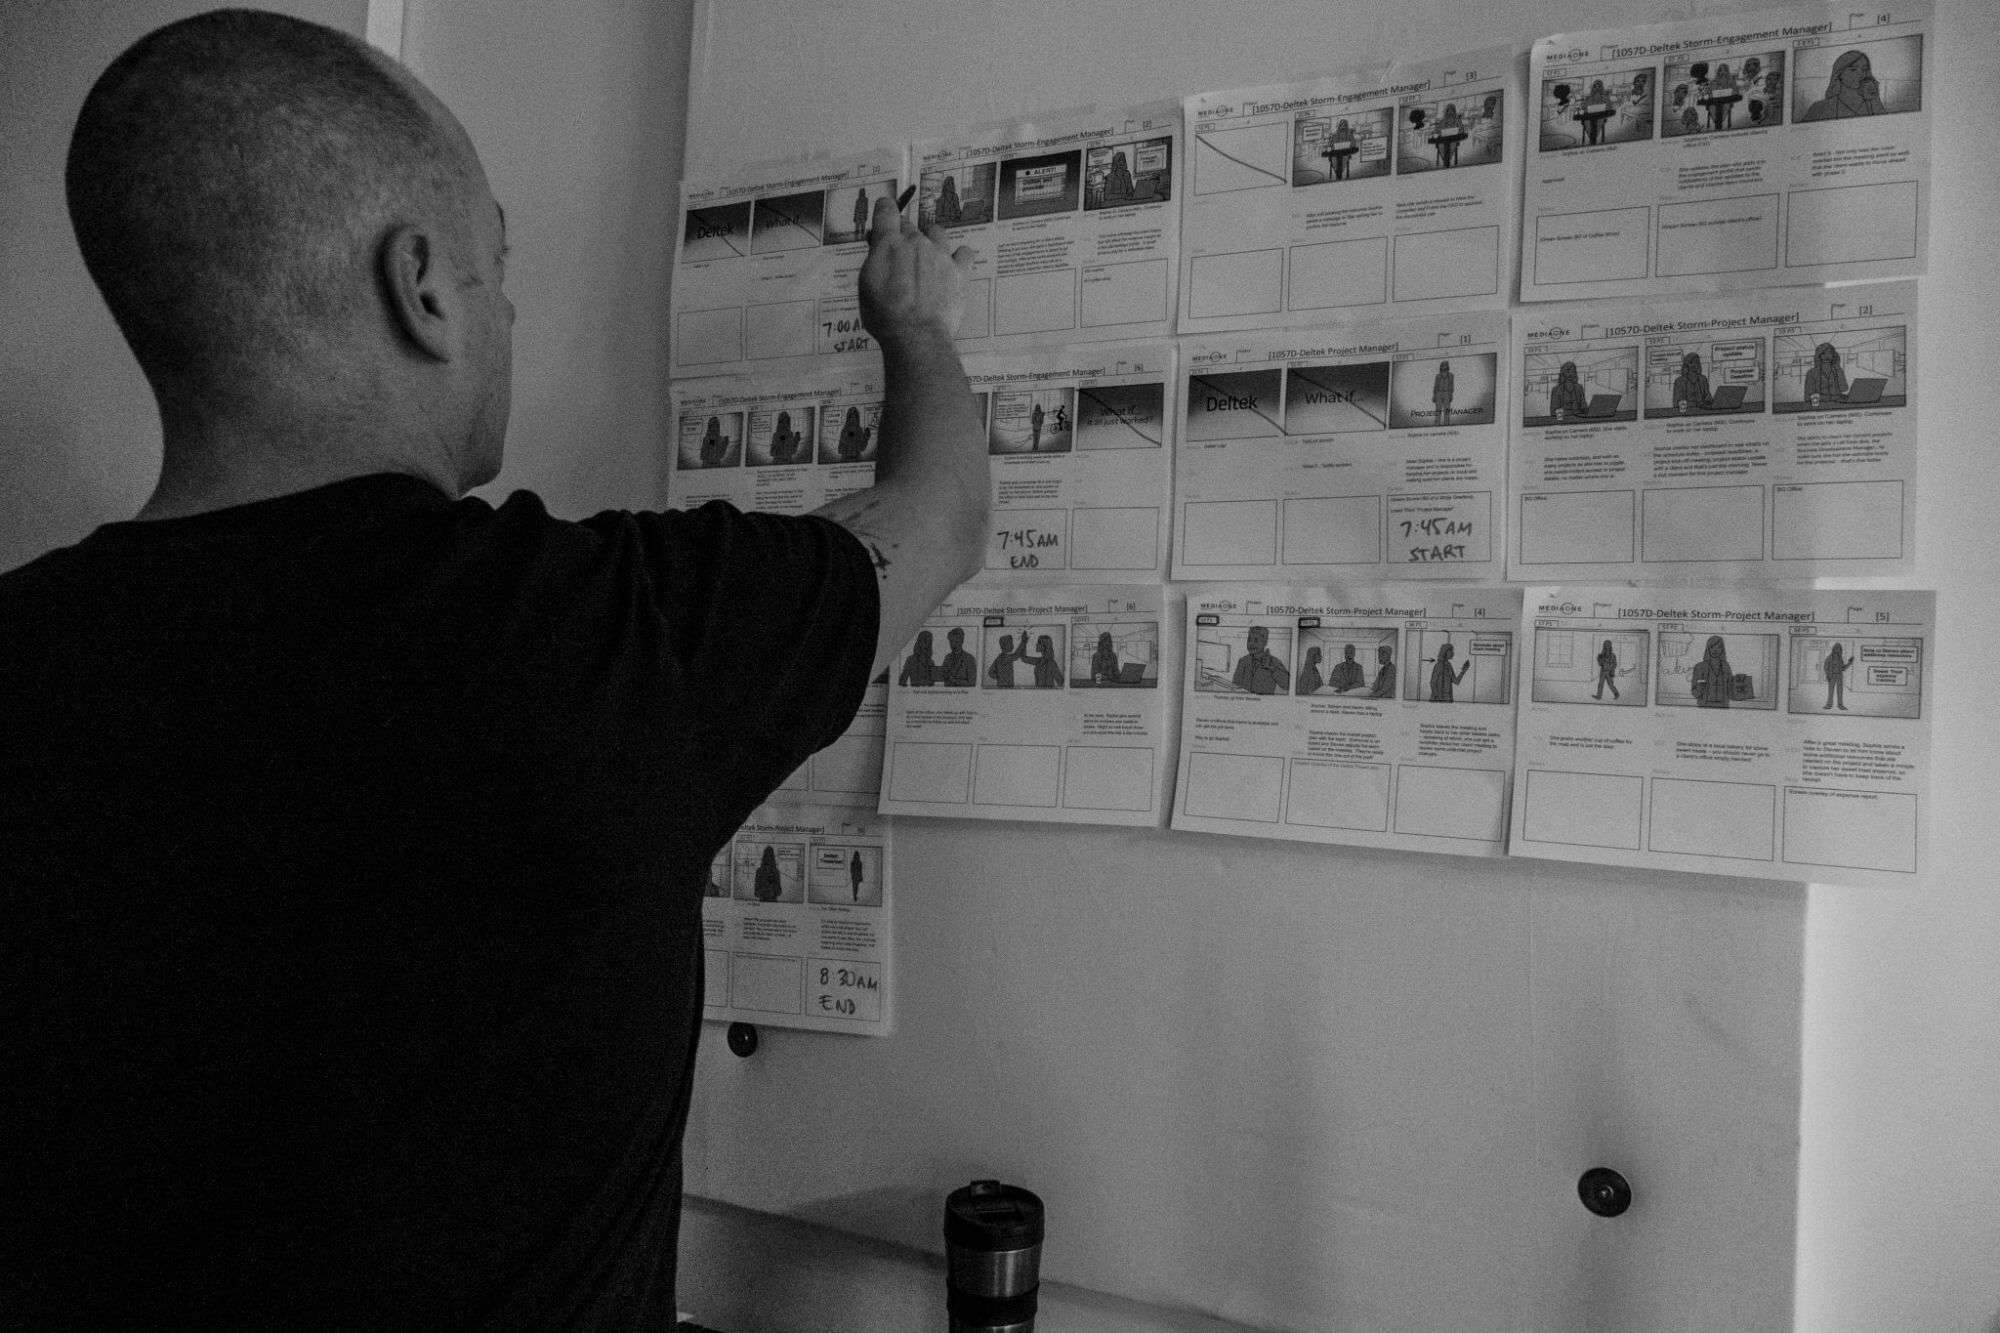 Producer of Media One Creative reviewing video storyboard - Black and White image